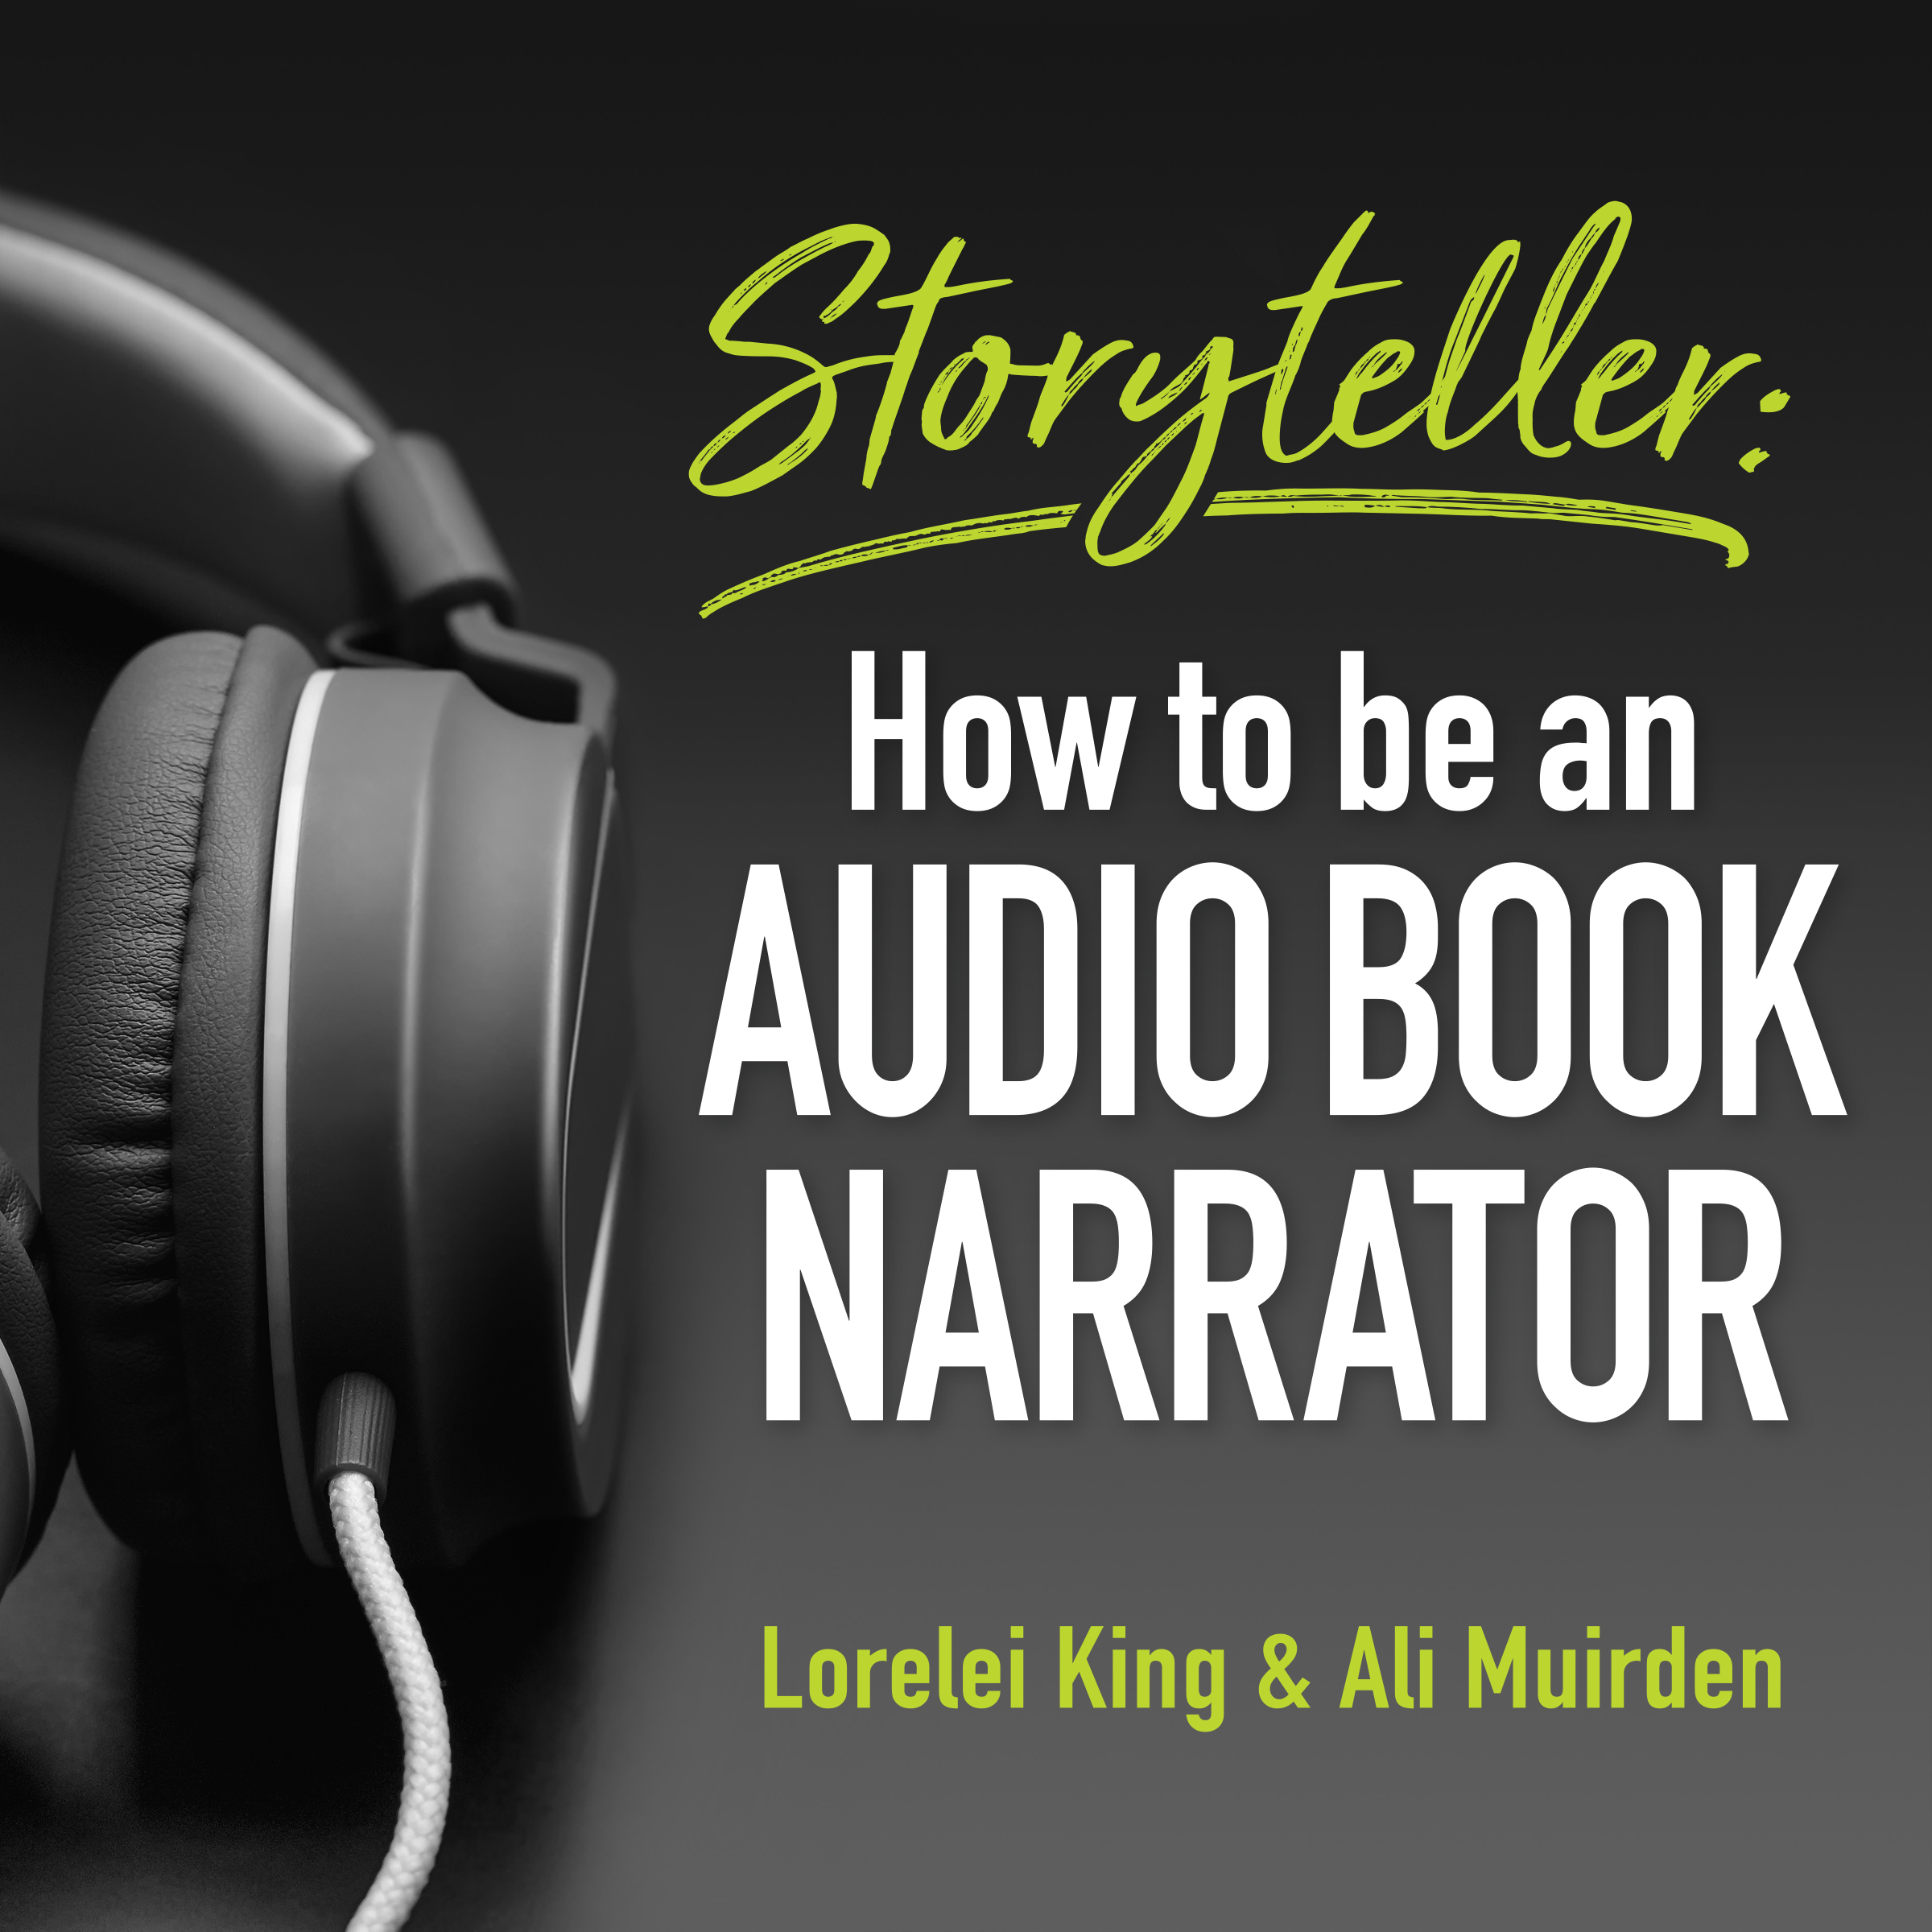 BookGram: StoryTeller by Lorelei King & Ali Muirden (Sultry Listeners Winner)